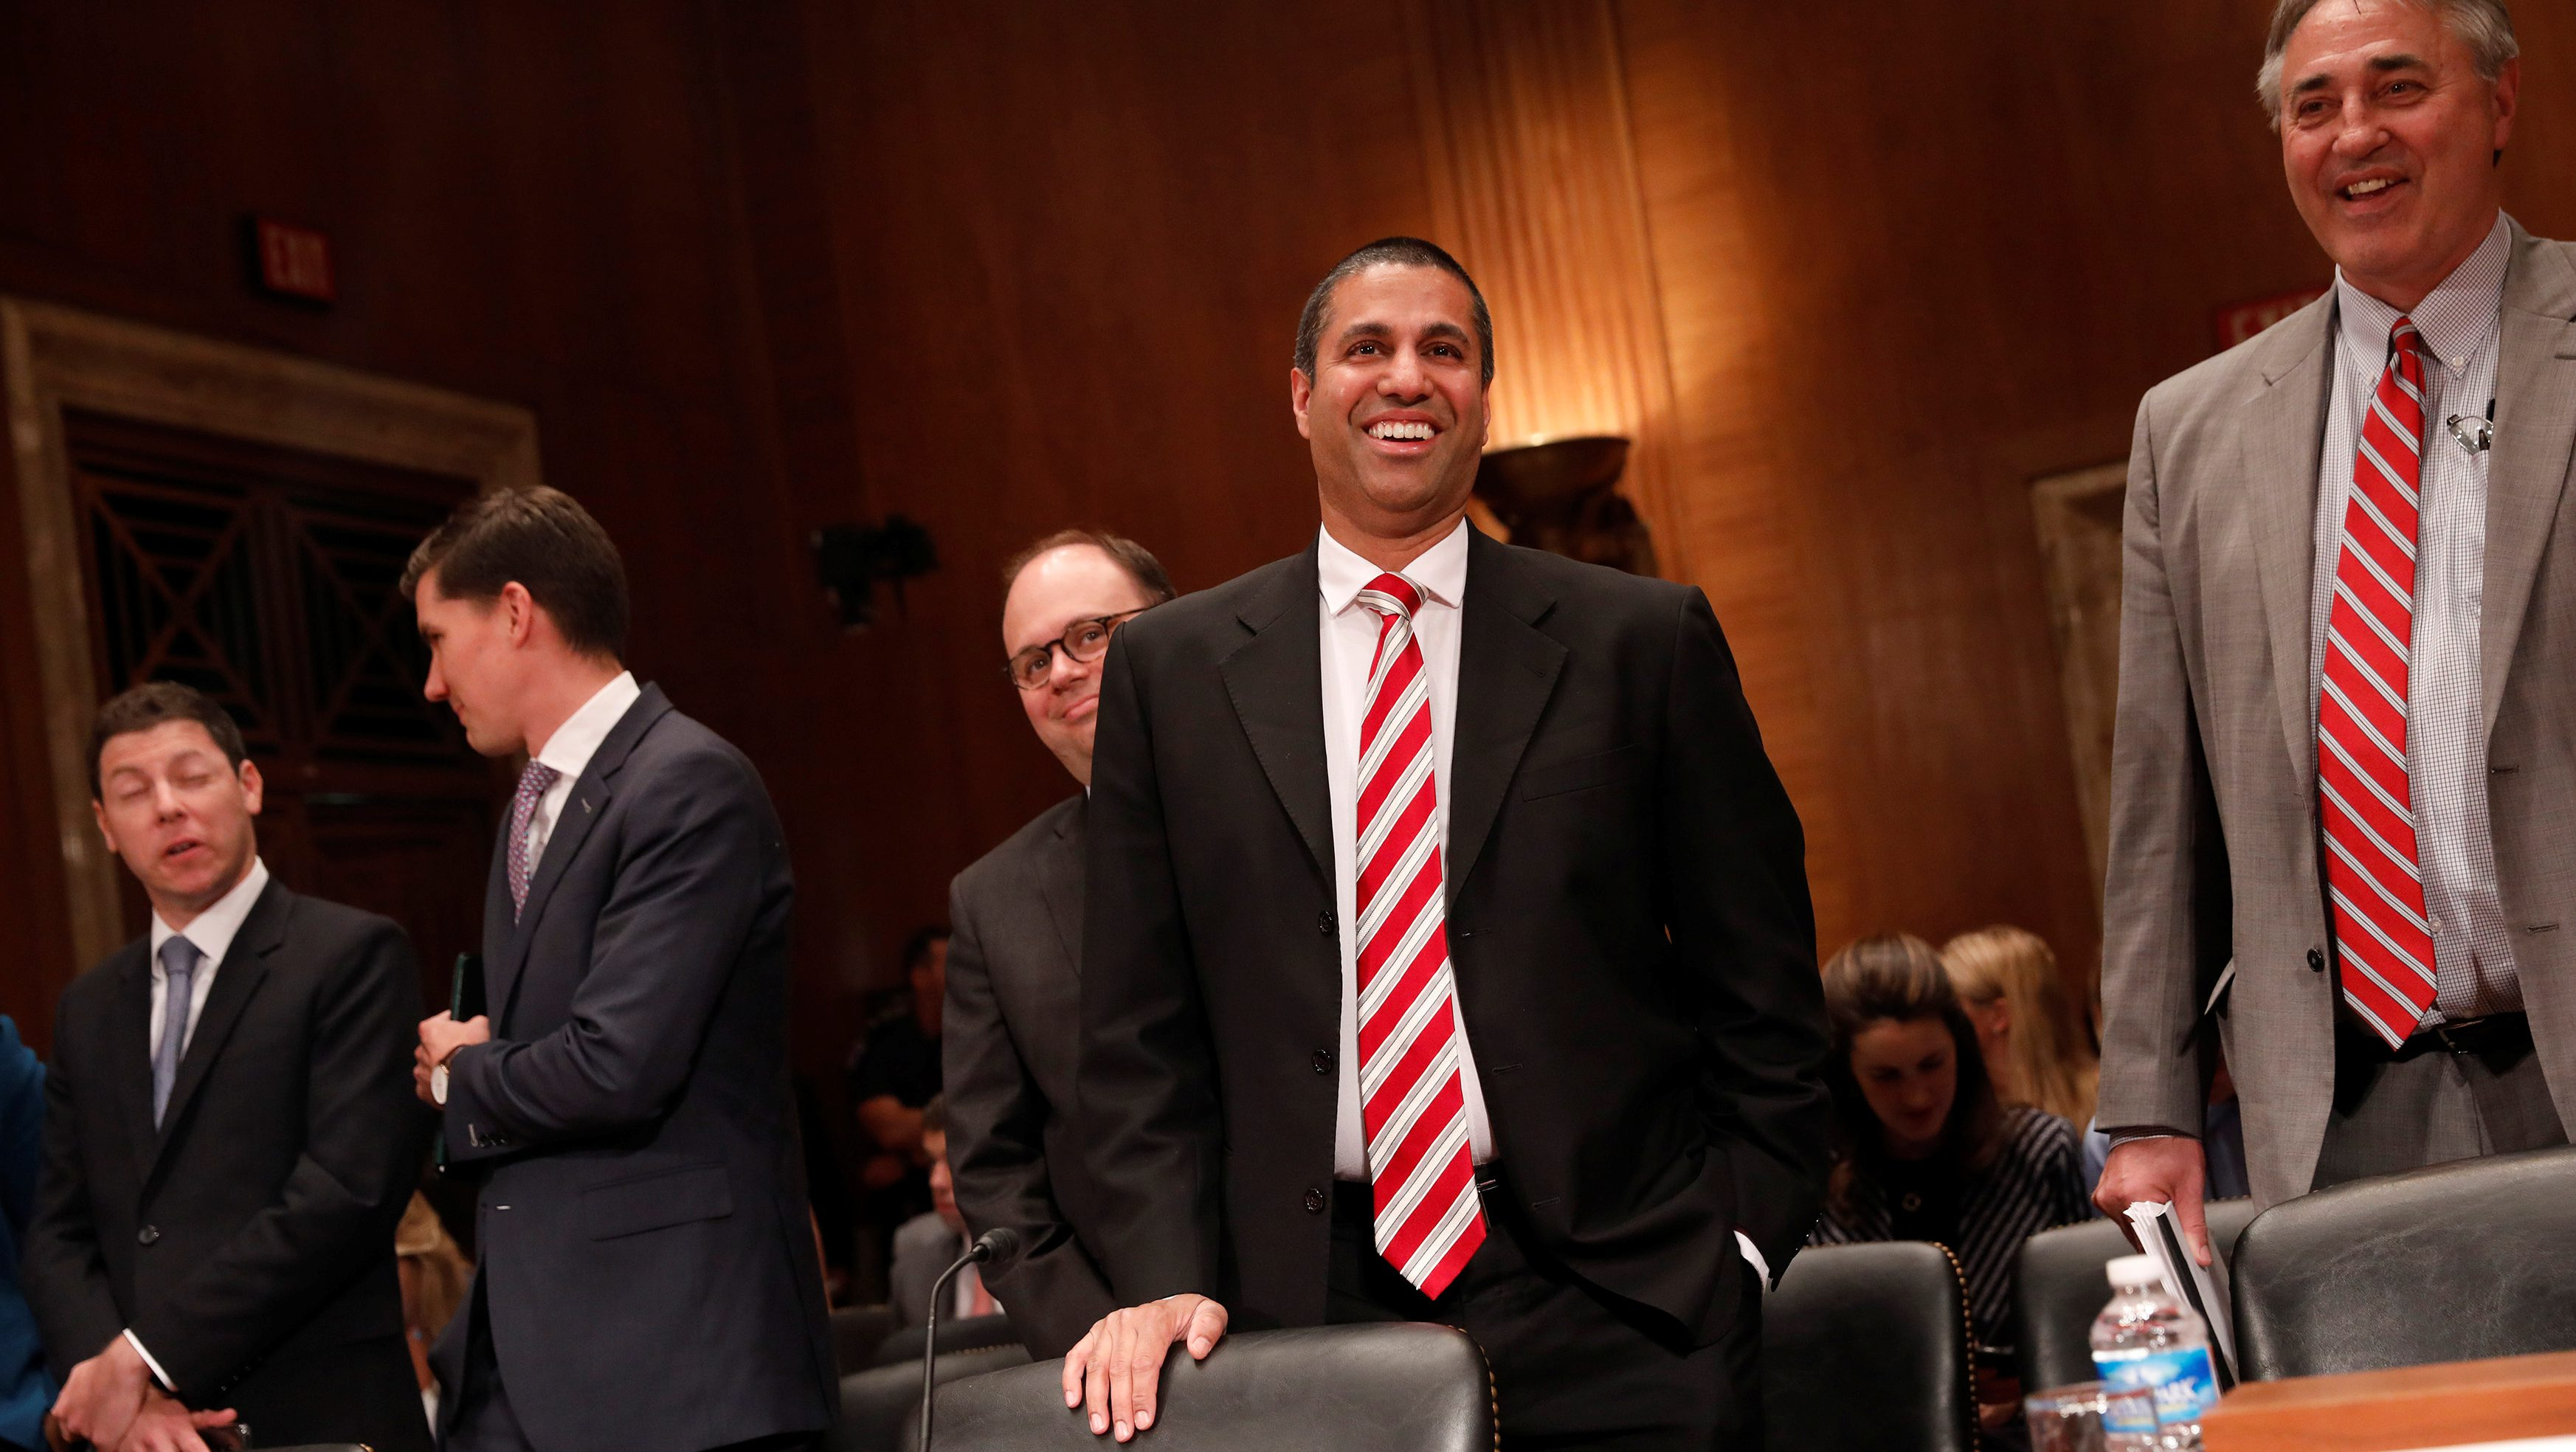 Ajit Pai, Chairman of the Federal Communications Commission, arrives to testify before a Senate Appropriations Financial Services and General Government Subcommittee on Capitol Hill in Washington